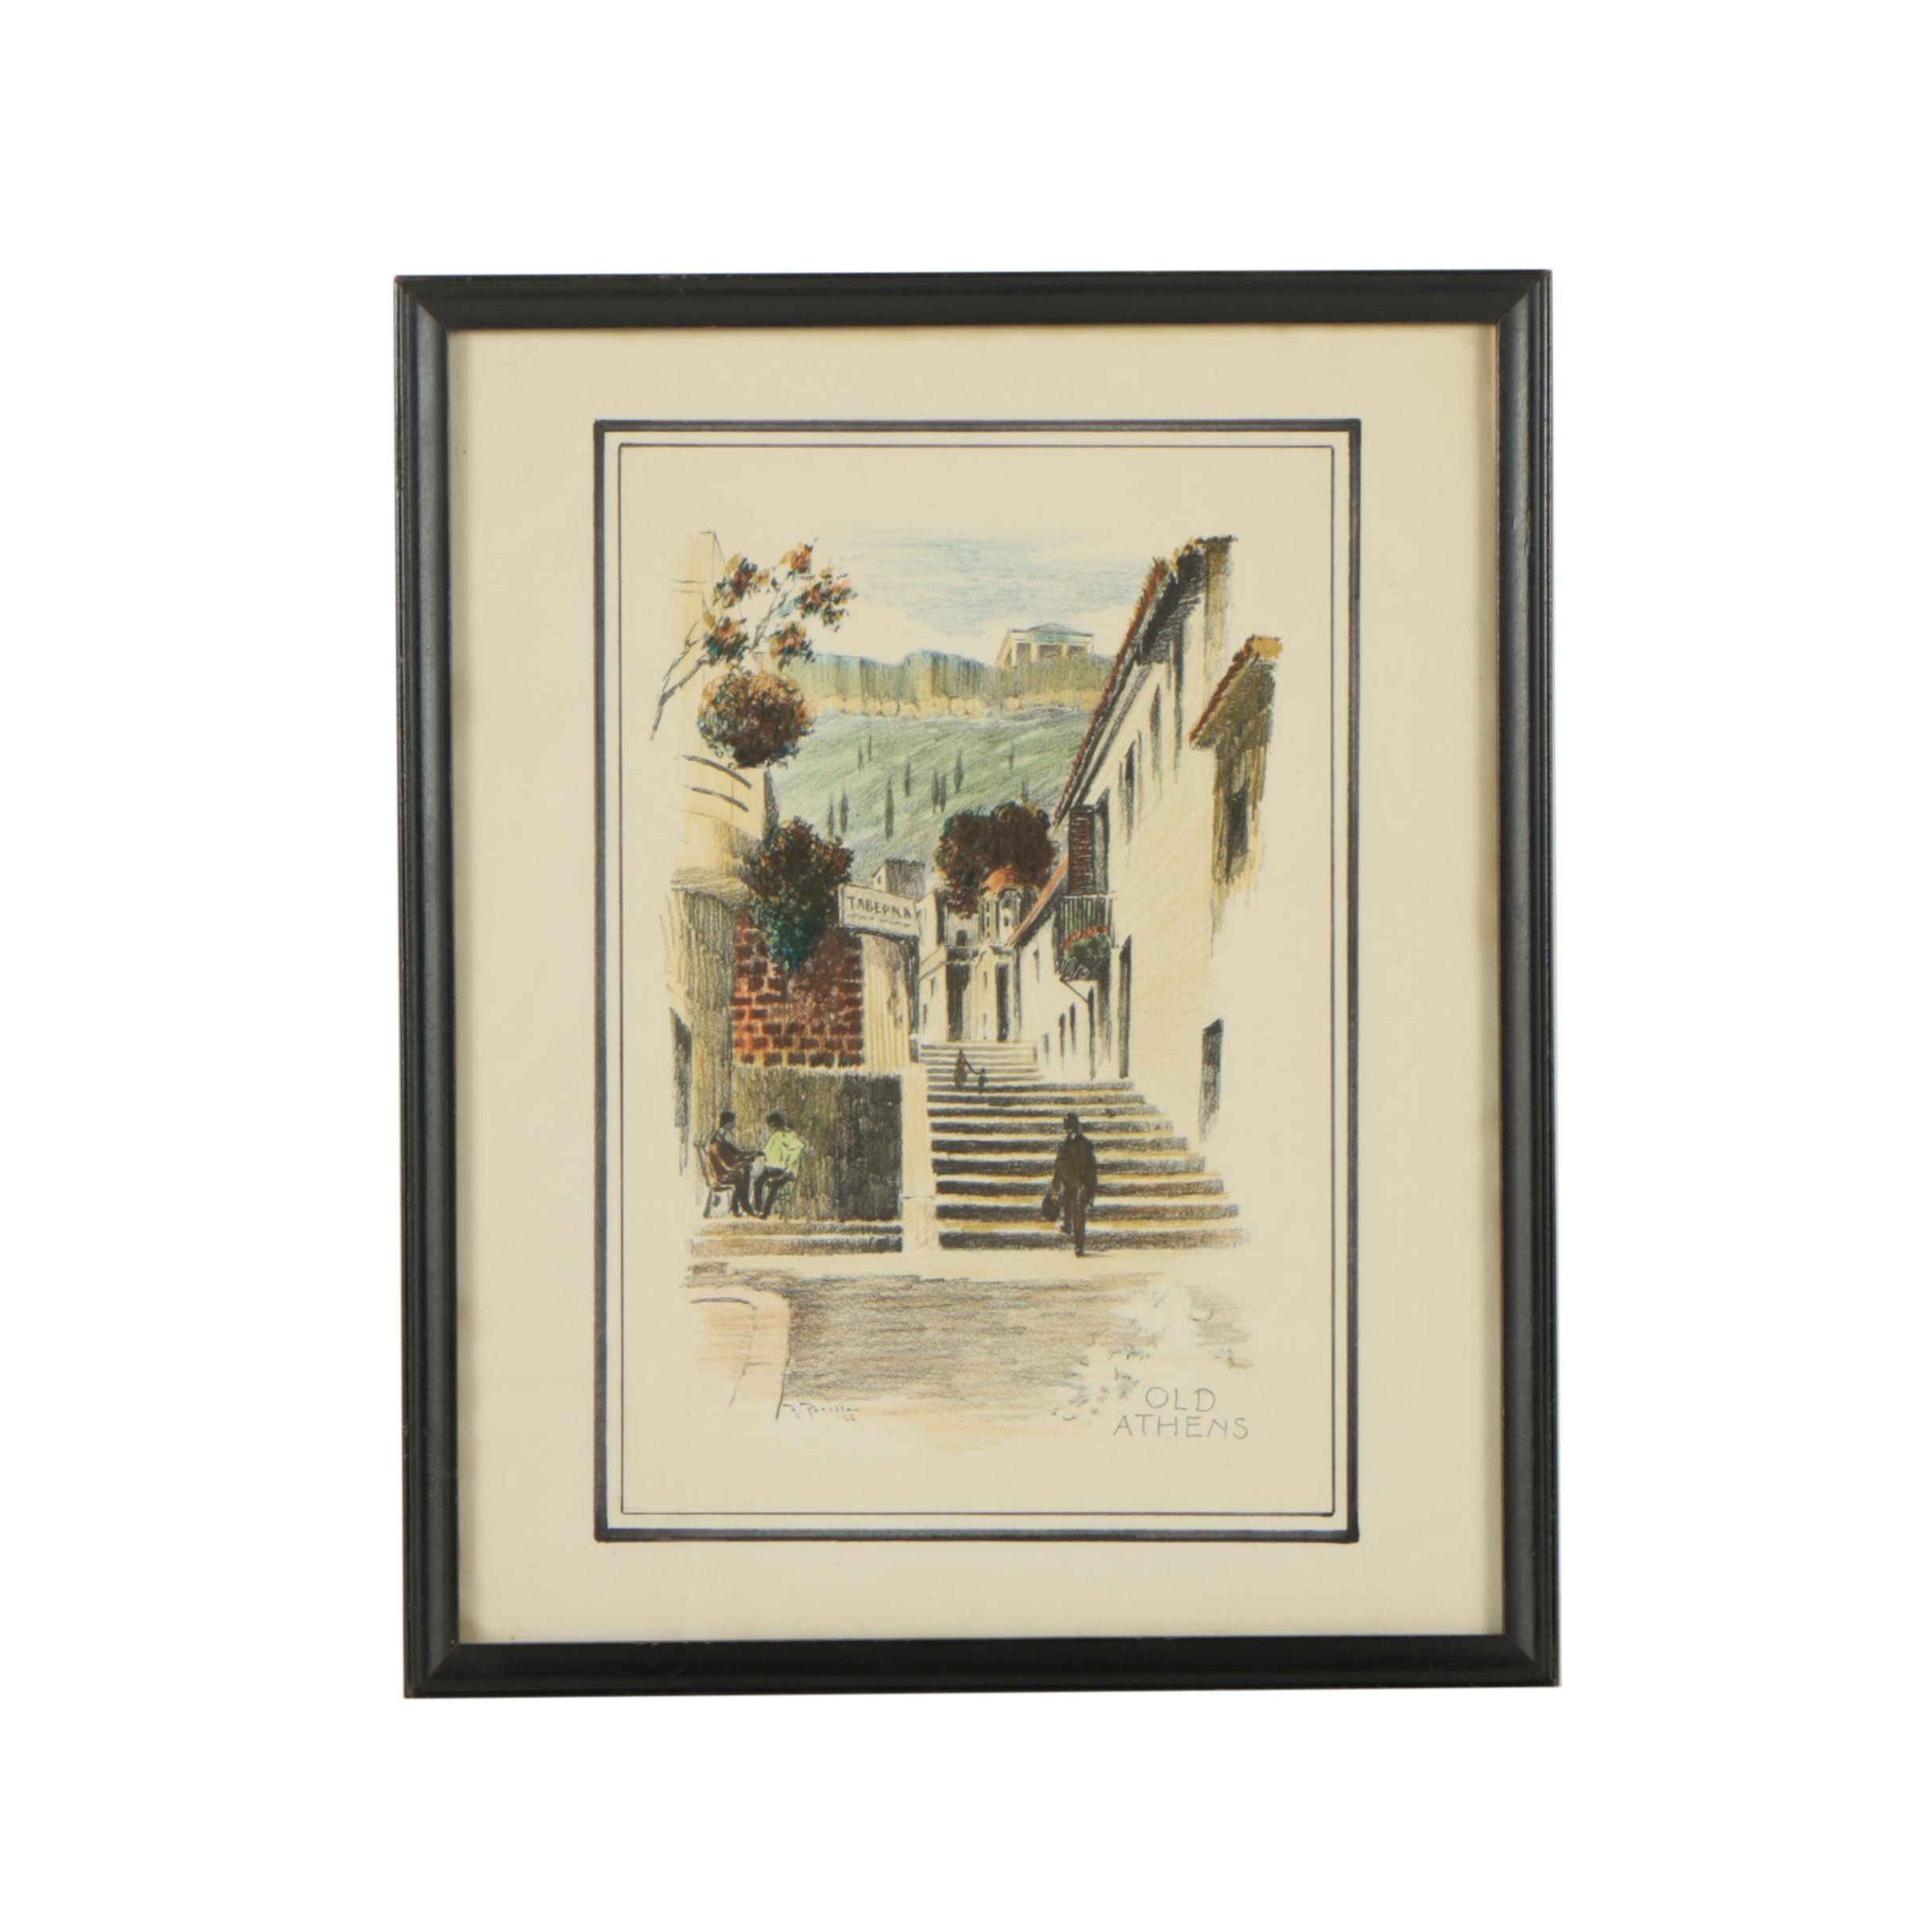 "After F. Parilla Vintage Hand-Colored Halftone Print ""Old Athens"""